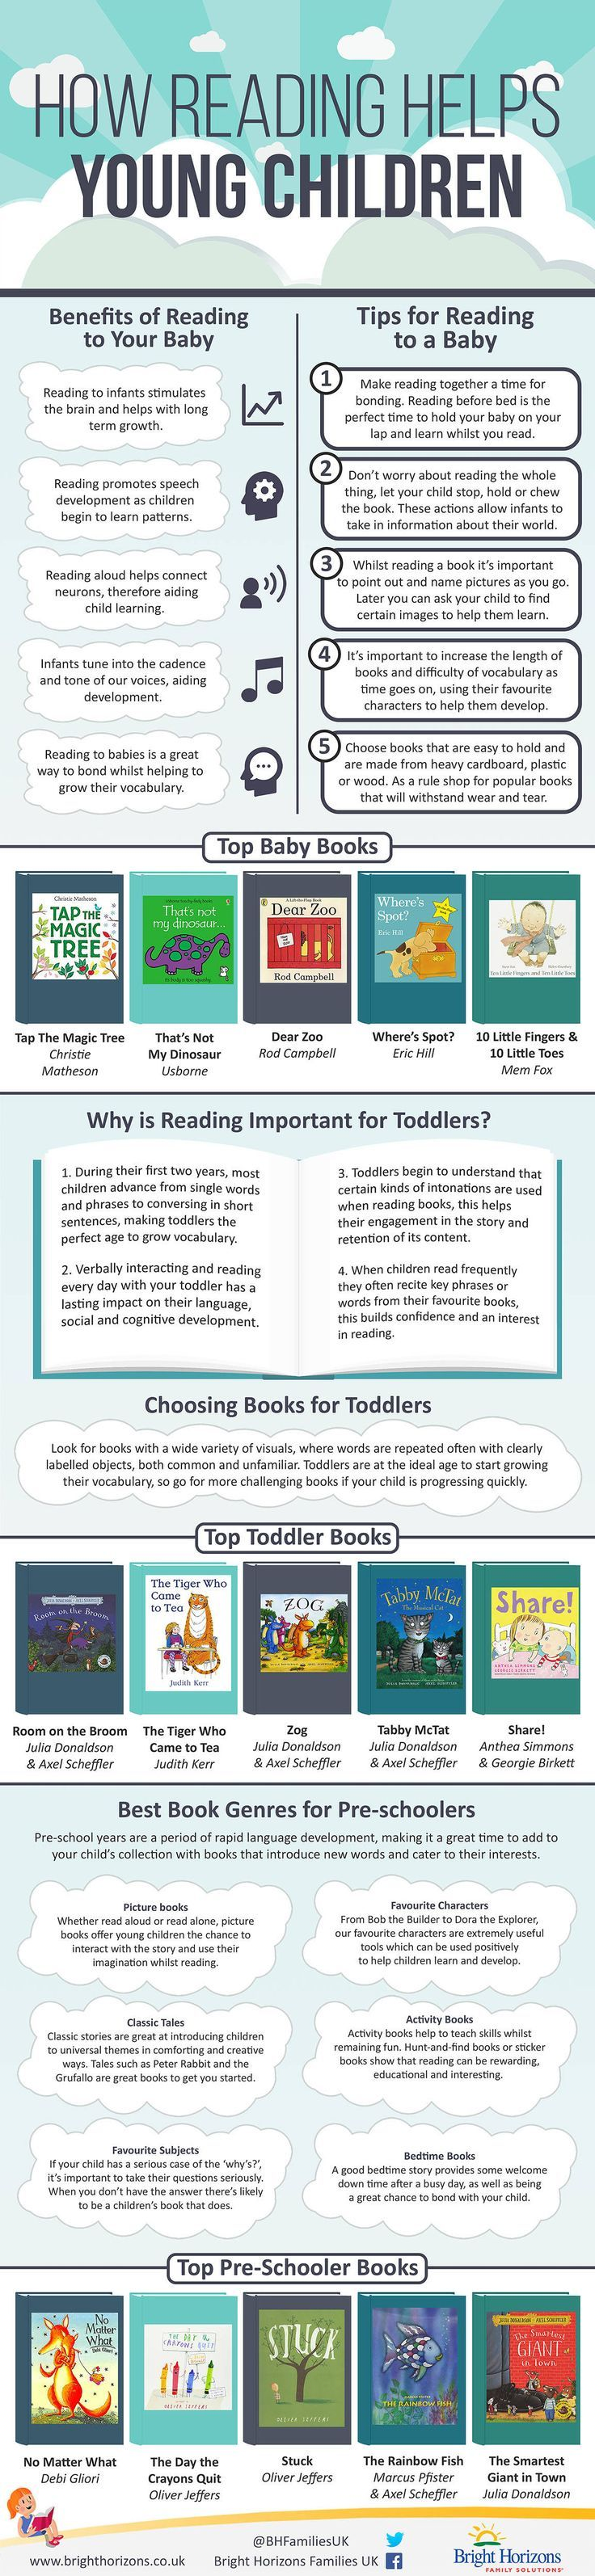 How reading helps young children. Reading tips with babies and reading tips for pre-schoolers. Why it is important to read with kids